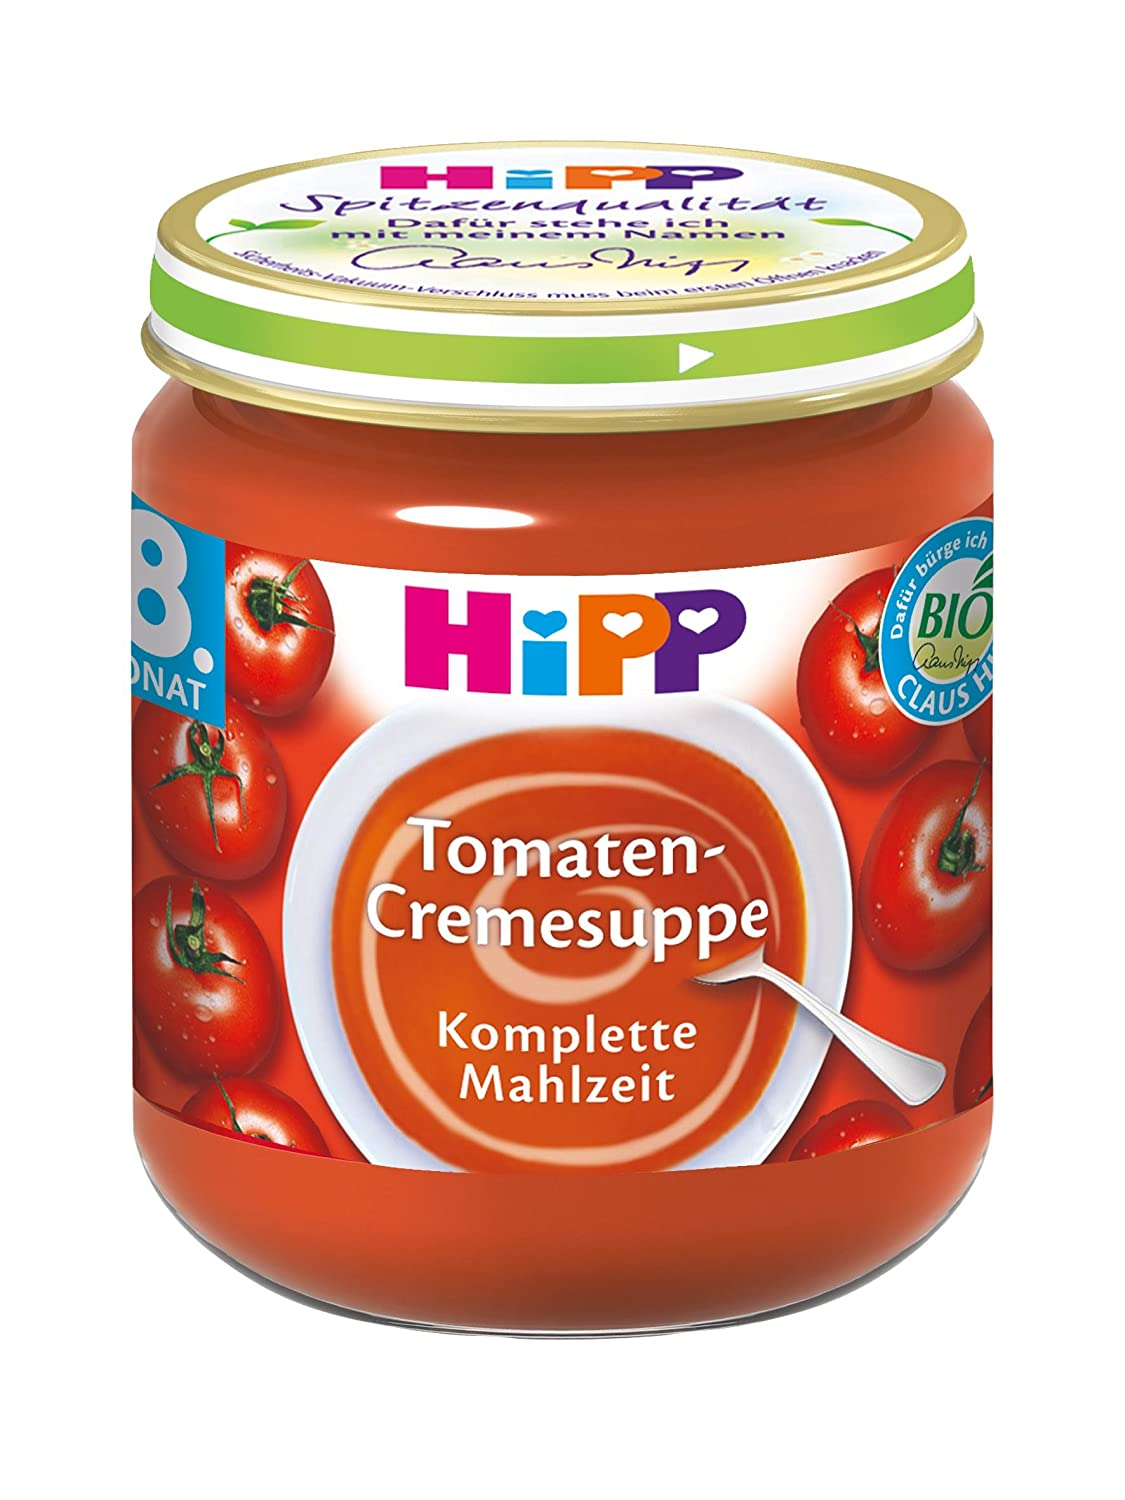 HiPP Tomaten-Cremesuppe, 6er Pack (6 x 200 g) 7930-01 Baby Kind